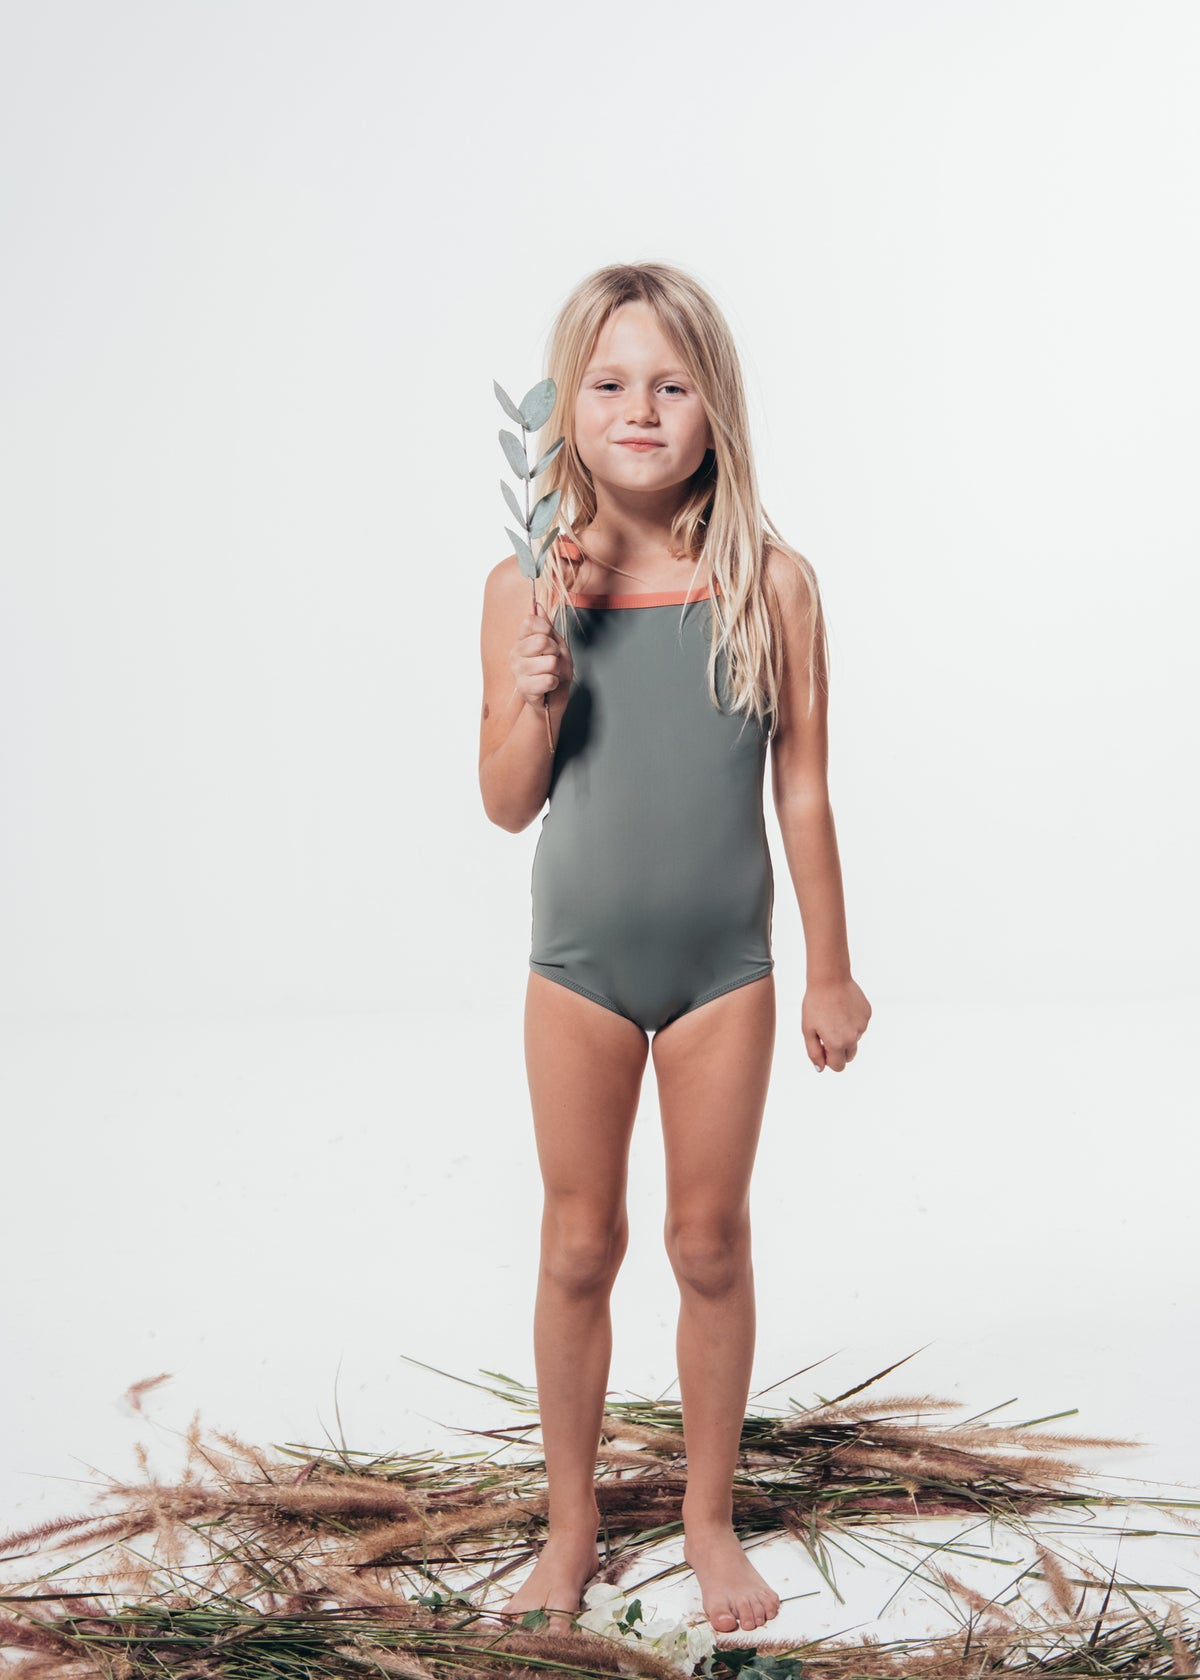 Ohoy swim kids swimsuit made from ecco friendly econyl regenerated plastic collected from the sea. Børne badedragt pink grøn